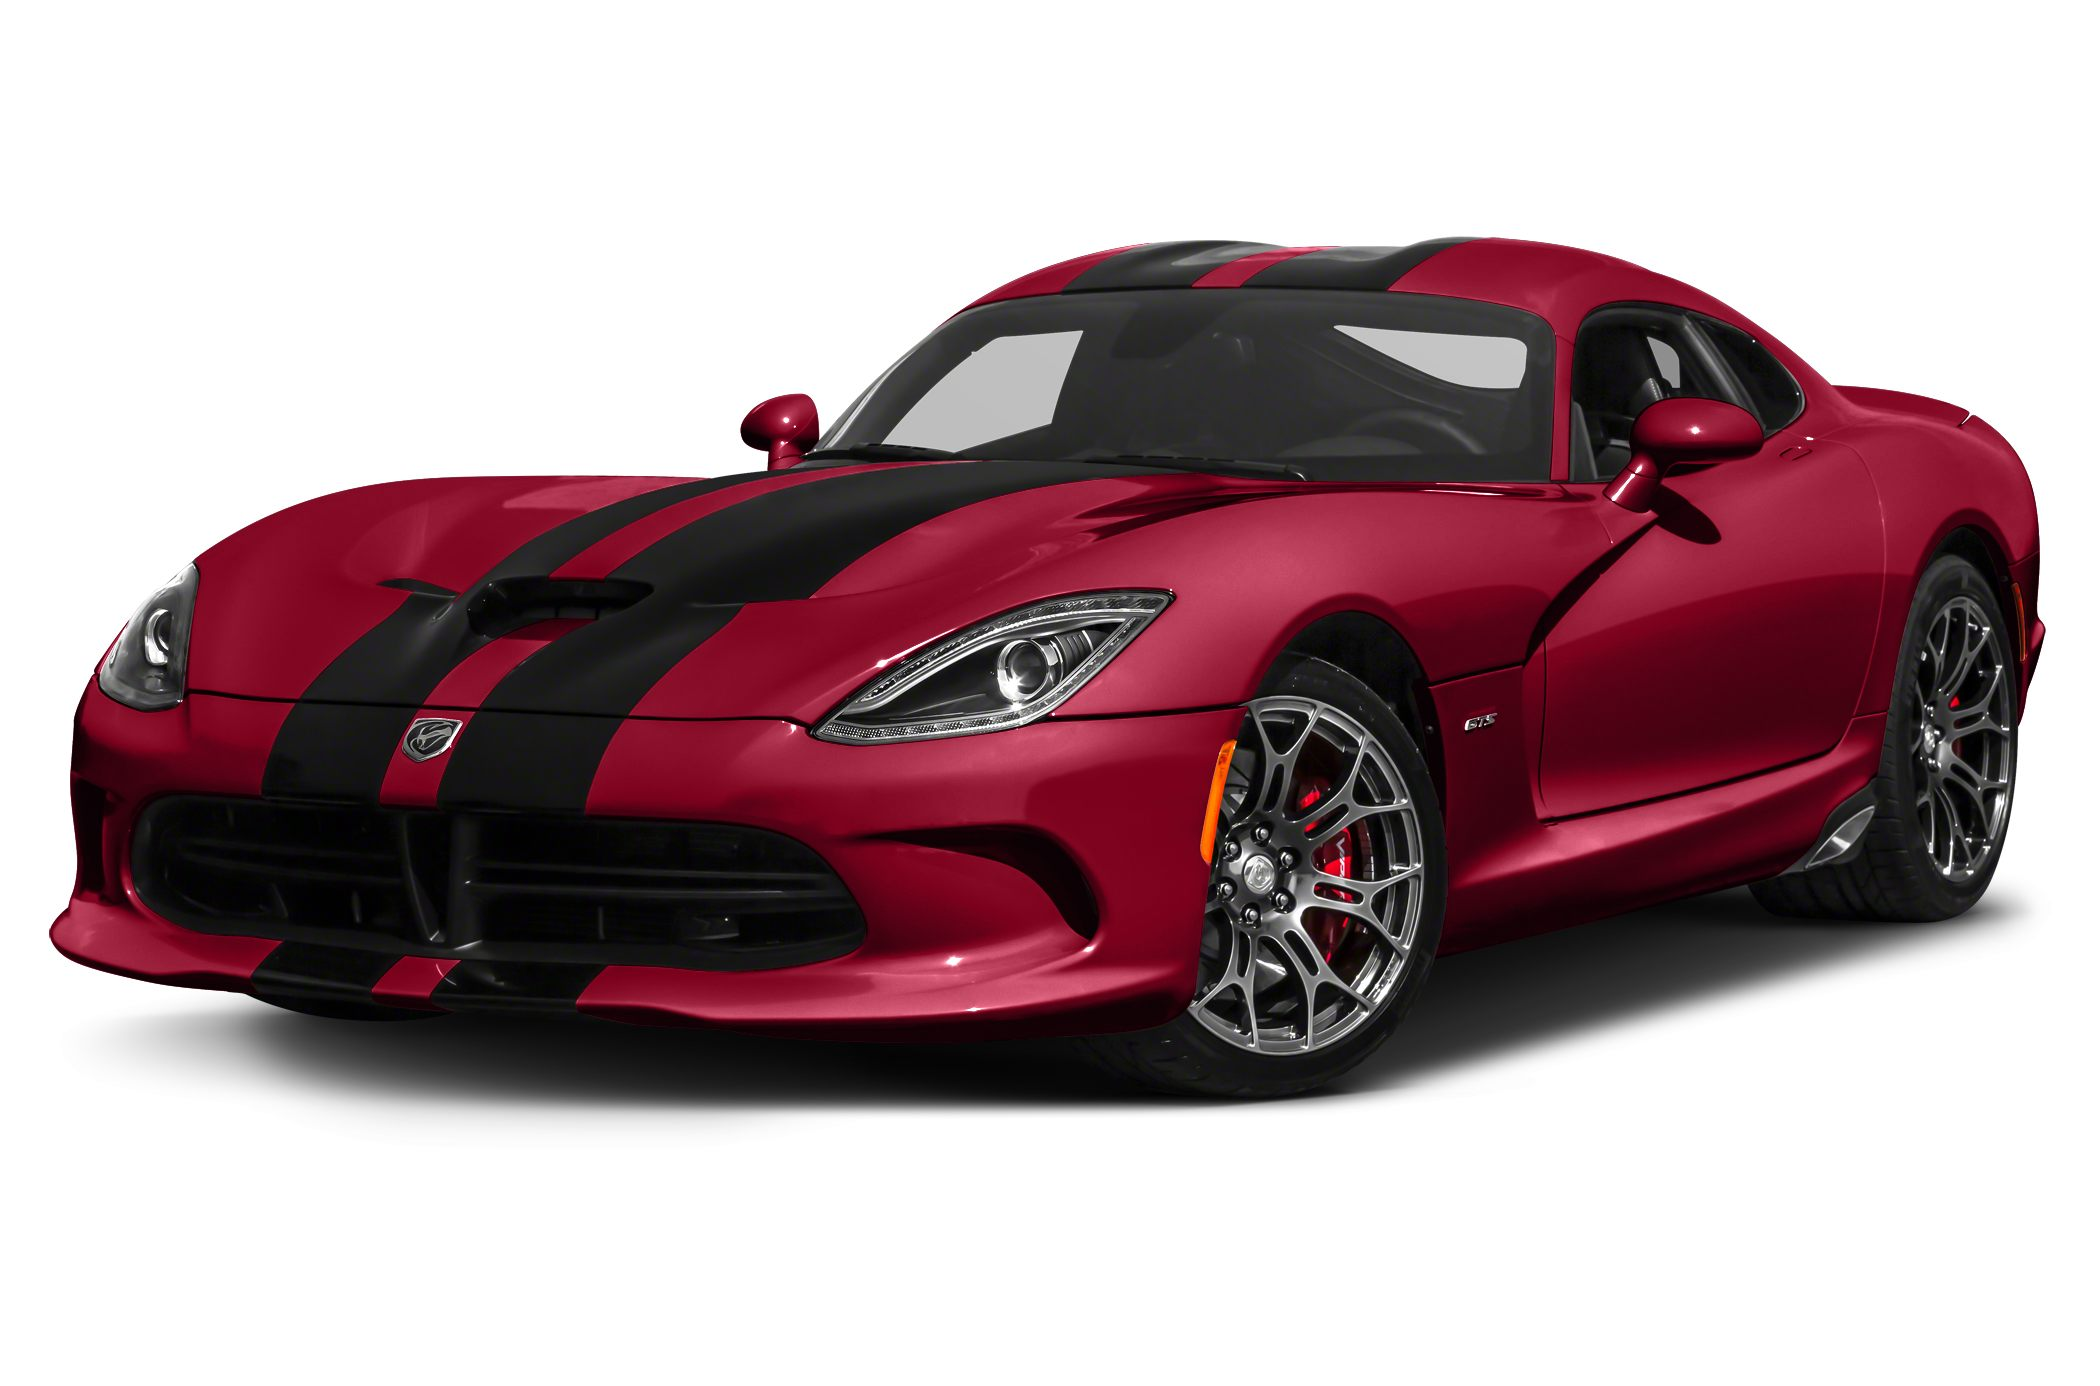 Dodge Viper production to end after 2017 - Autoblog